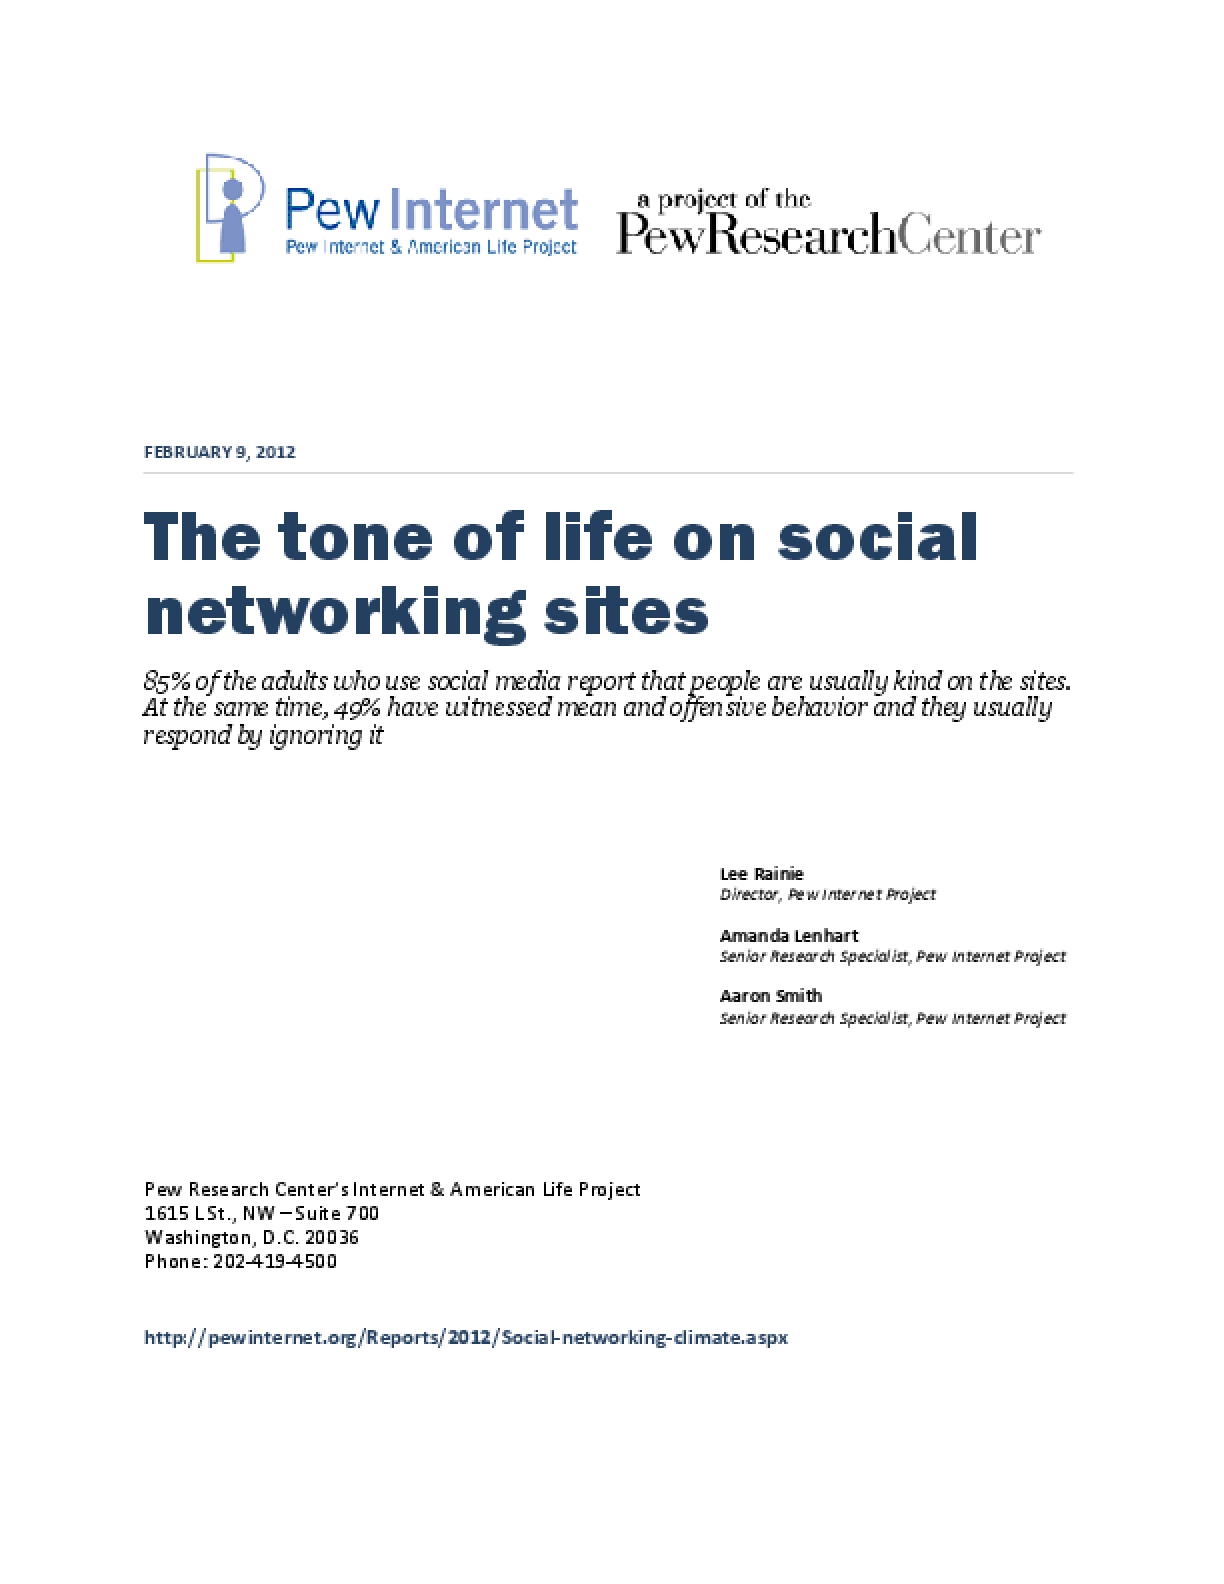 The Tone of Life on Social Networking Sites